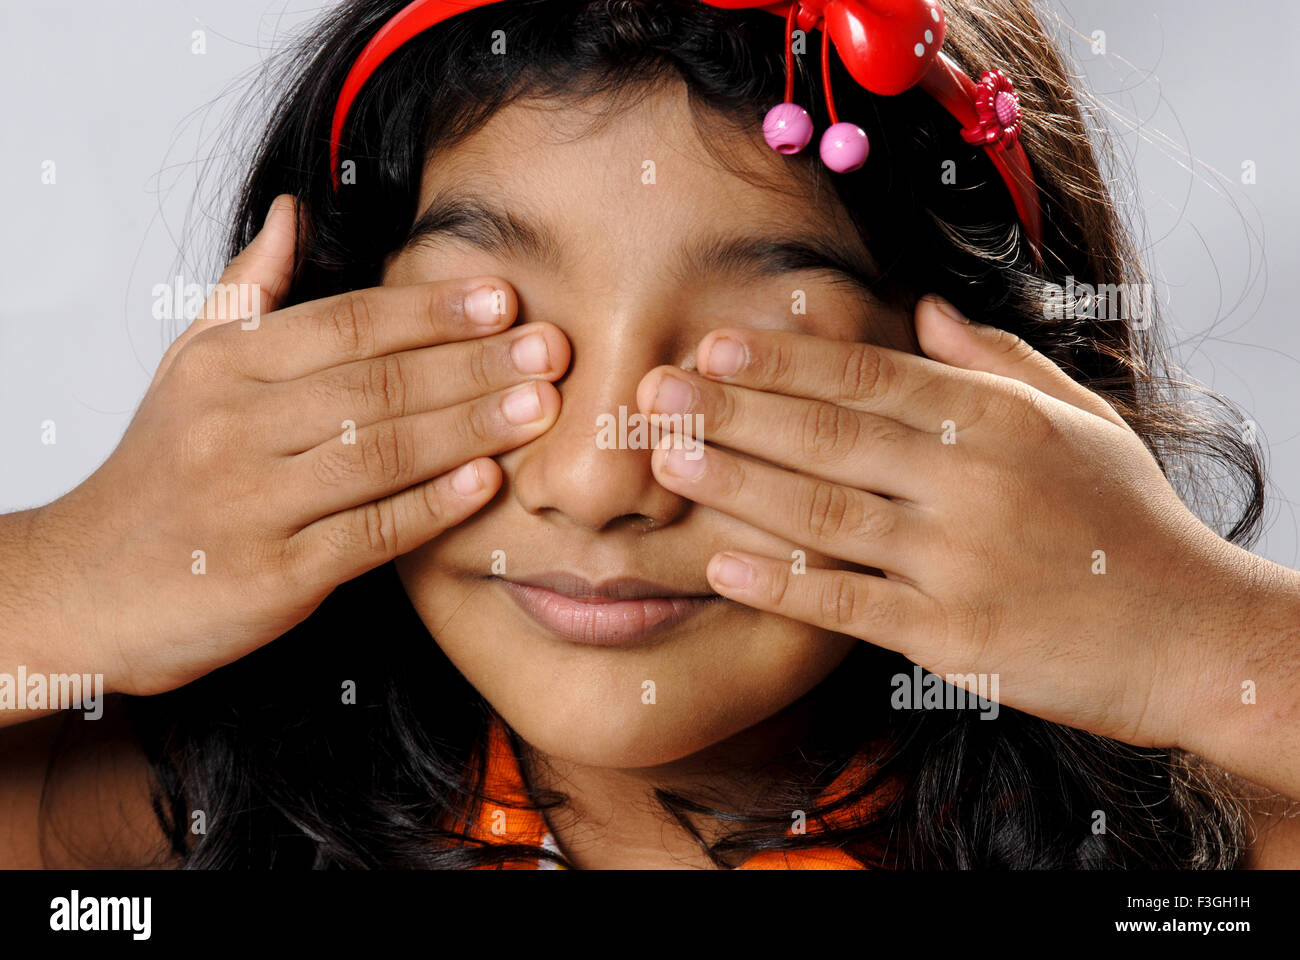 baby girl child with hands covering eyes playing hide and seek MR#152 - Stock Image